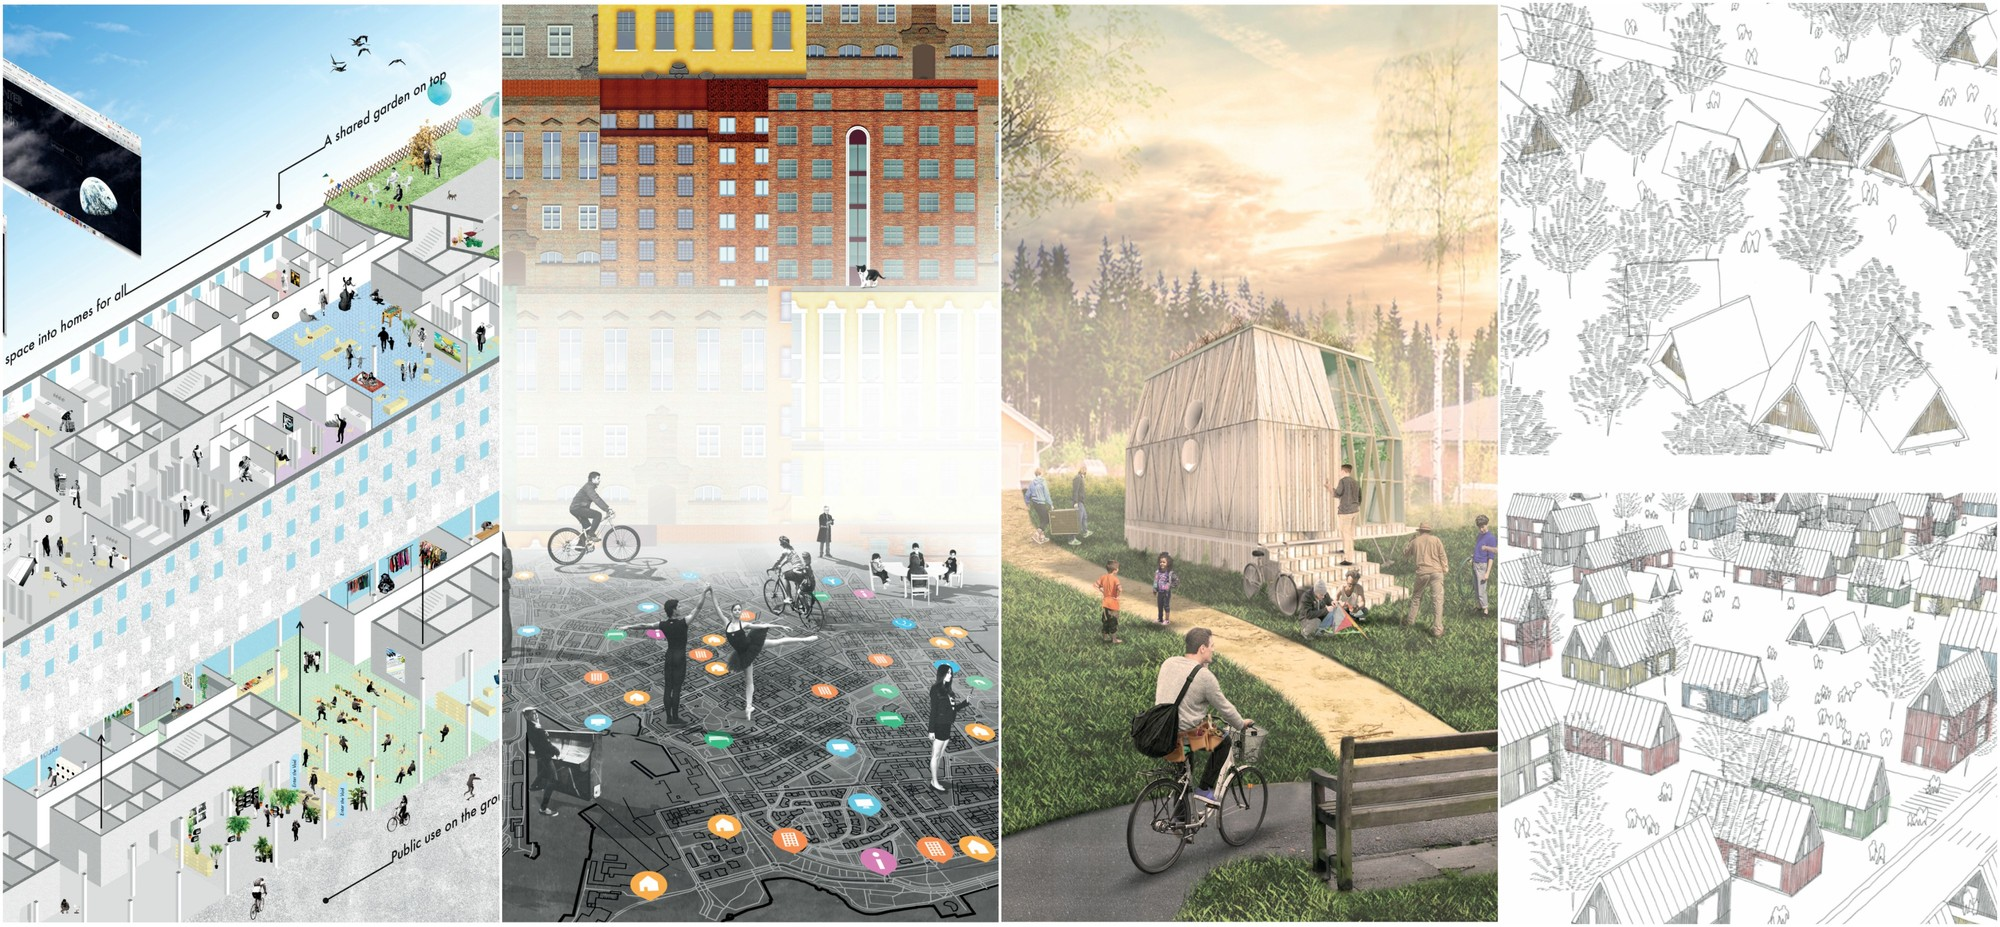 7 Architectural Solutions for Asylum Seekers Shown by the